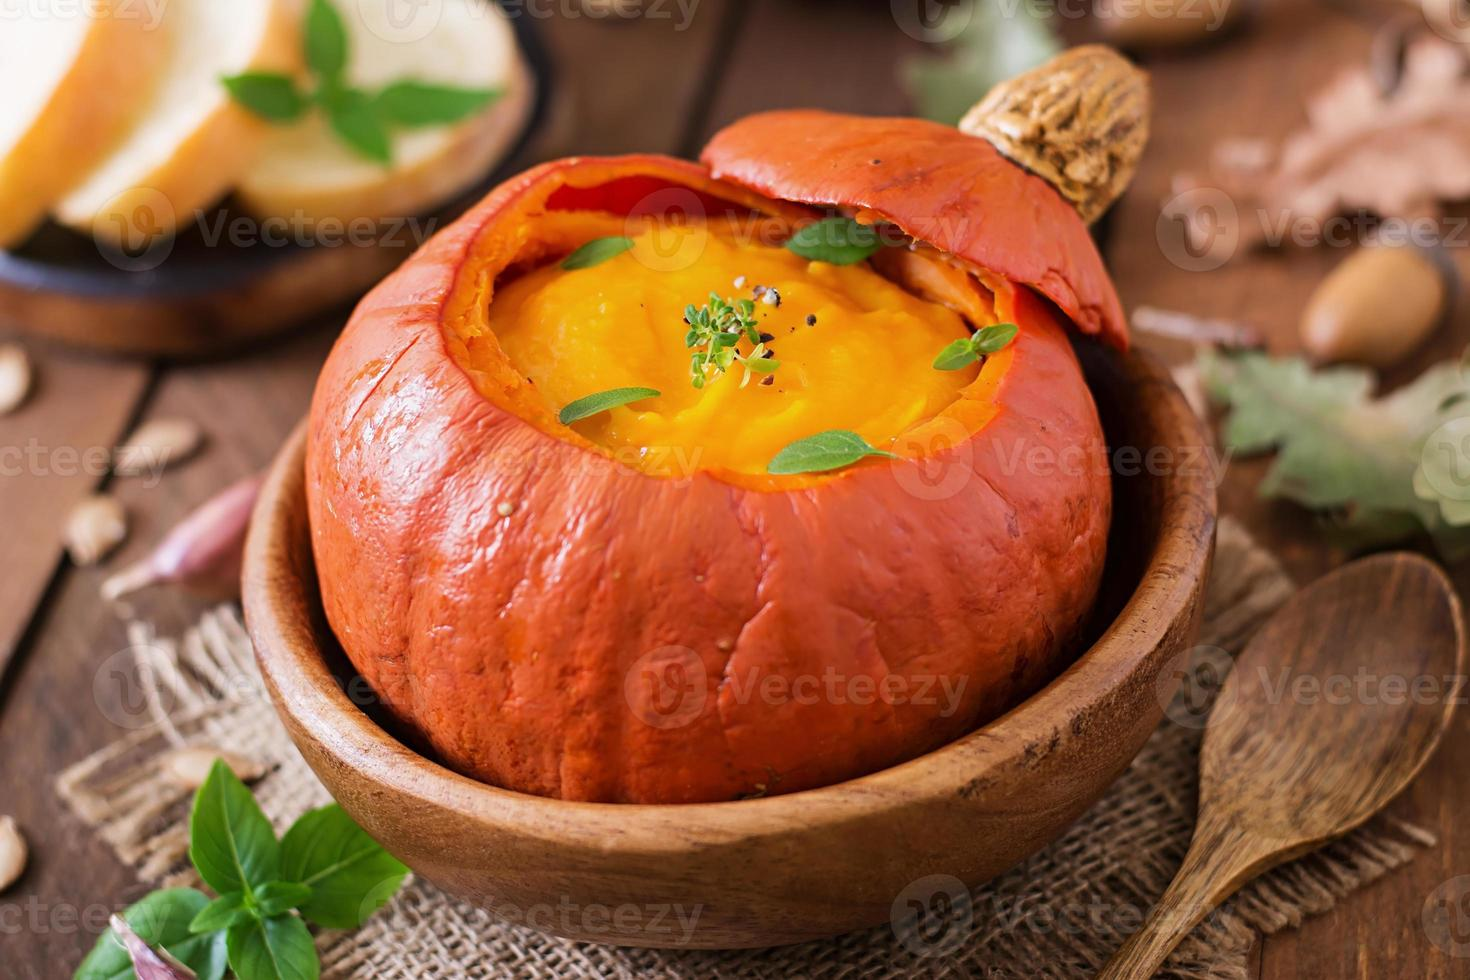 Pumpkin cream soup with peppers and herbs in a pumpkin photo